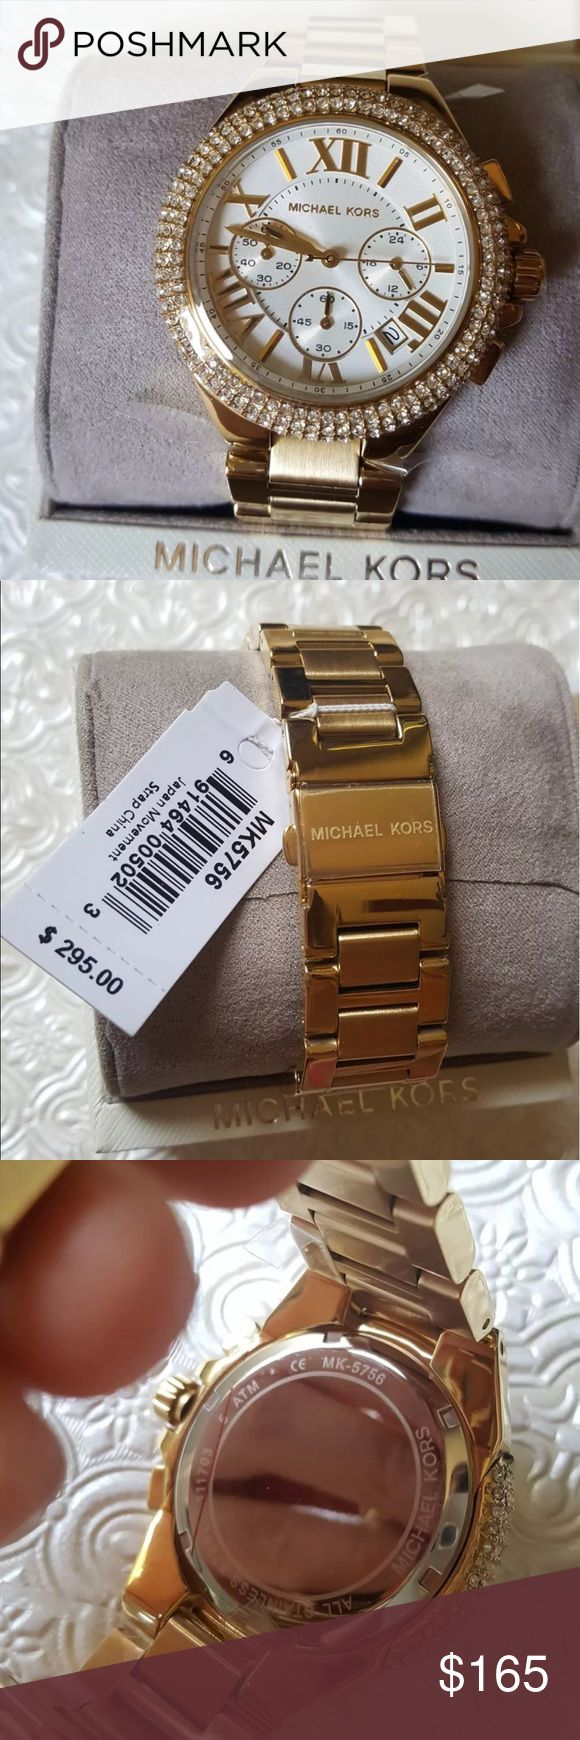 NWT Michael Kors Glitz Gold Tone Watch (Full size) New with tag! Come with box and a manual booklet.   **Authentic** **Priority shipping**  Price is firm. ORG$ 295.       Case diameter: 45 mm.Case thickness: 12 mm. Round case shape. Band width: 20 mm. Fold over clasp with safety release. Water resistant at 30 meters / 100 feet. Casual watch style. Michael Kors Bradshaw Chronograph Gold-tone Ladies Watch MK5756 Michael Kors Accessories Watches